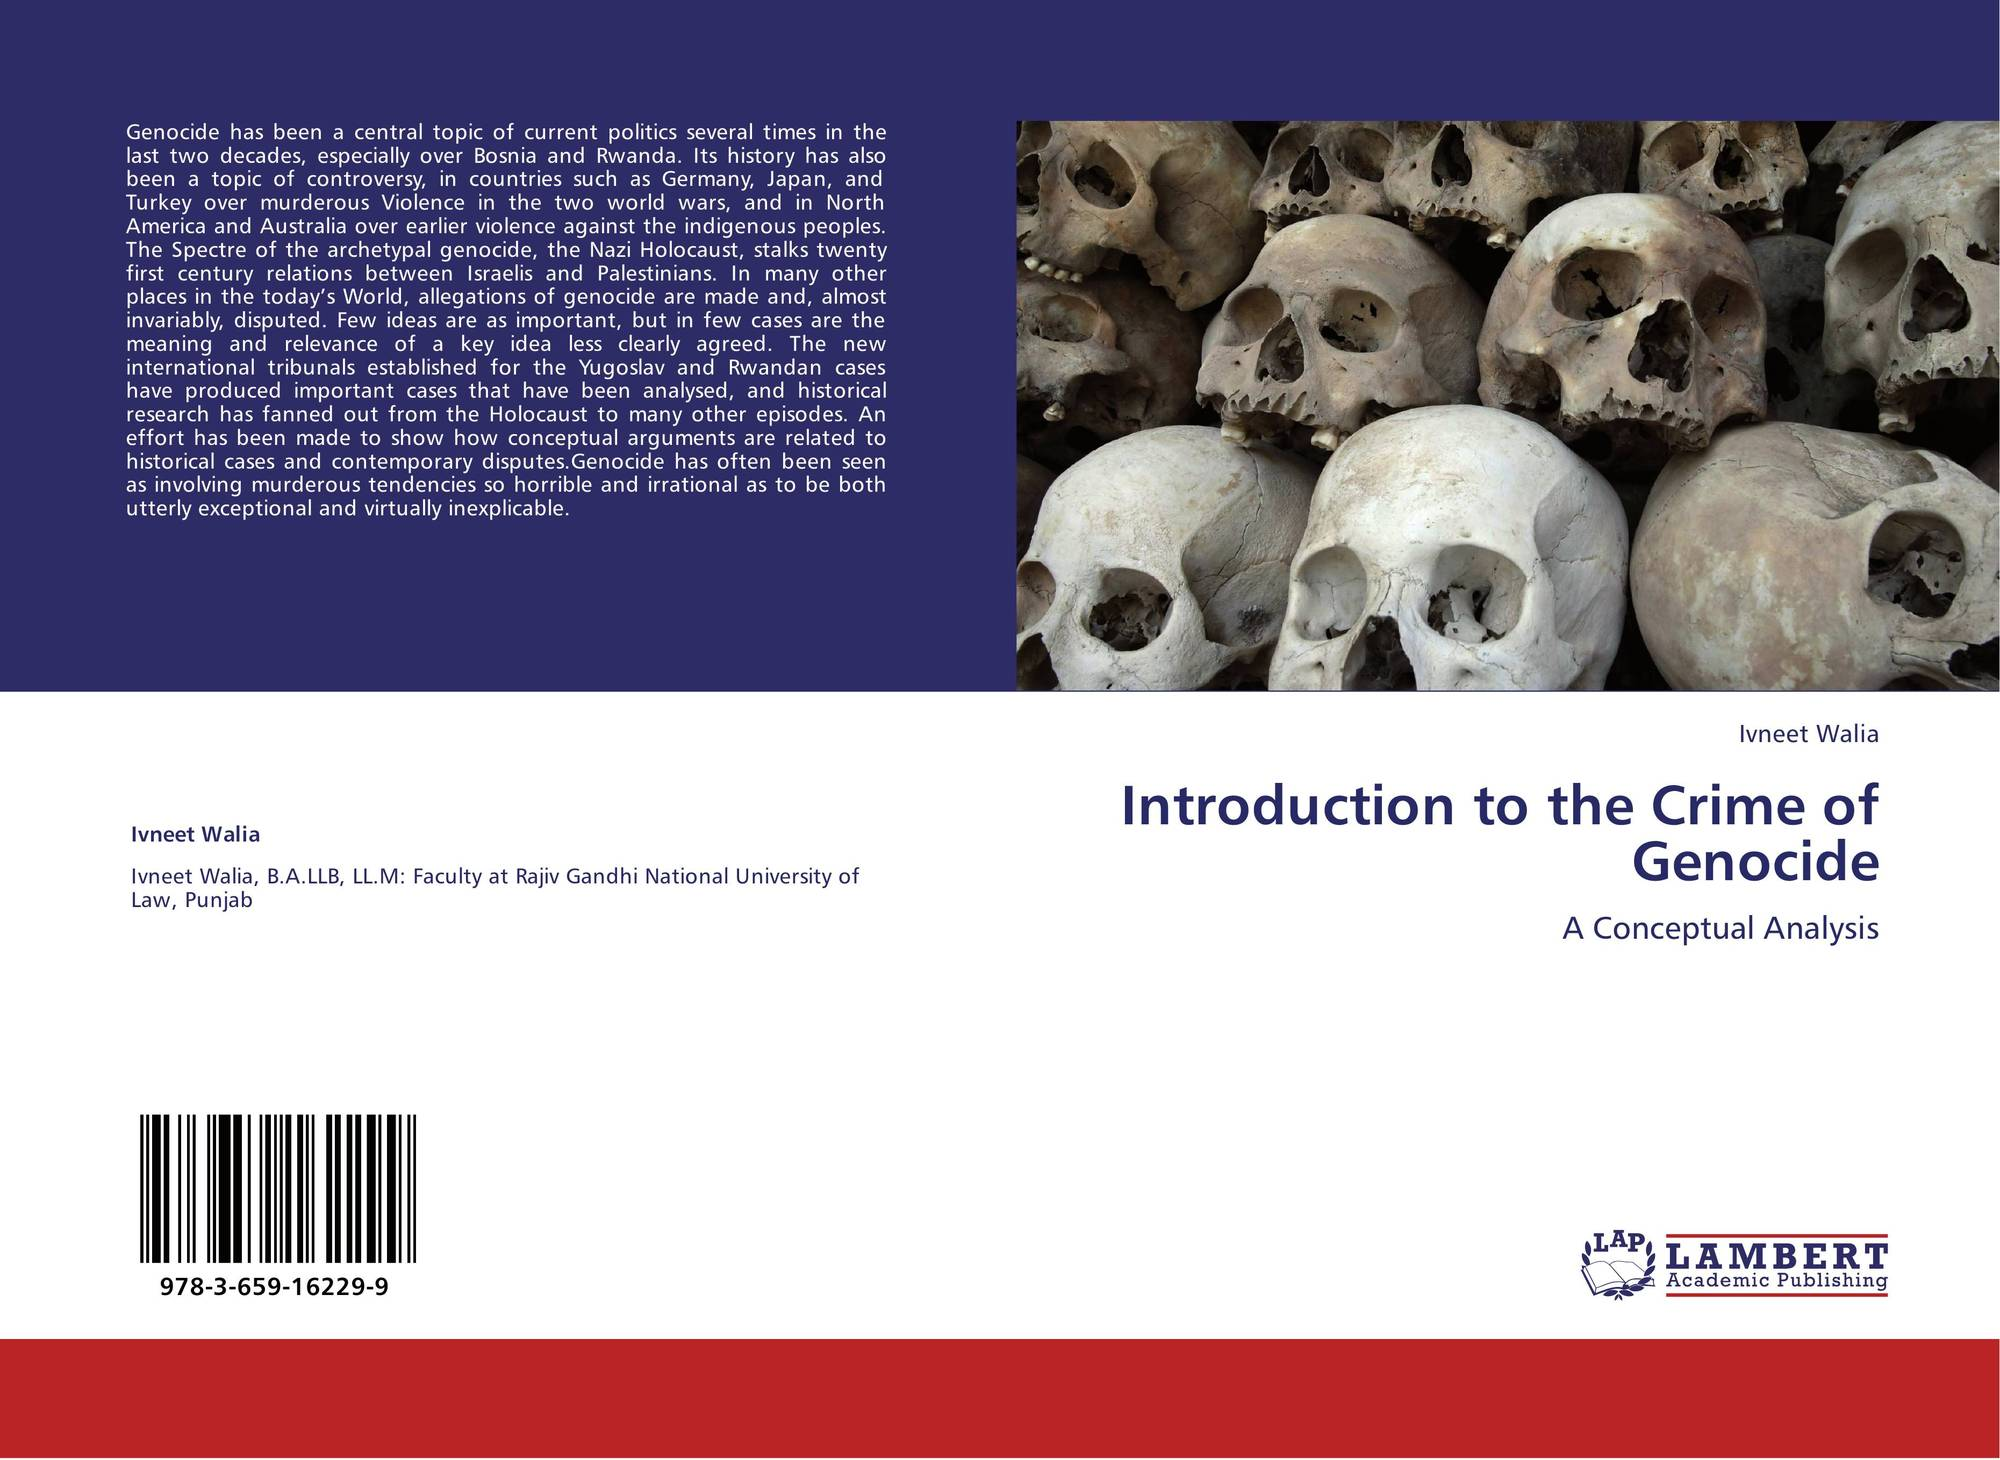 an introduction to the issue of genocide In their introduction, the editors of this volume refer to the holocaust as a paradigm (p 7) as well as explain how holocaust studies can be seen as the in her article on the rwandan genocide, maria van haperen includes the translation of a document, the hutu ten commandments, issued in 1990.